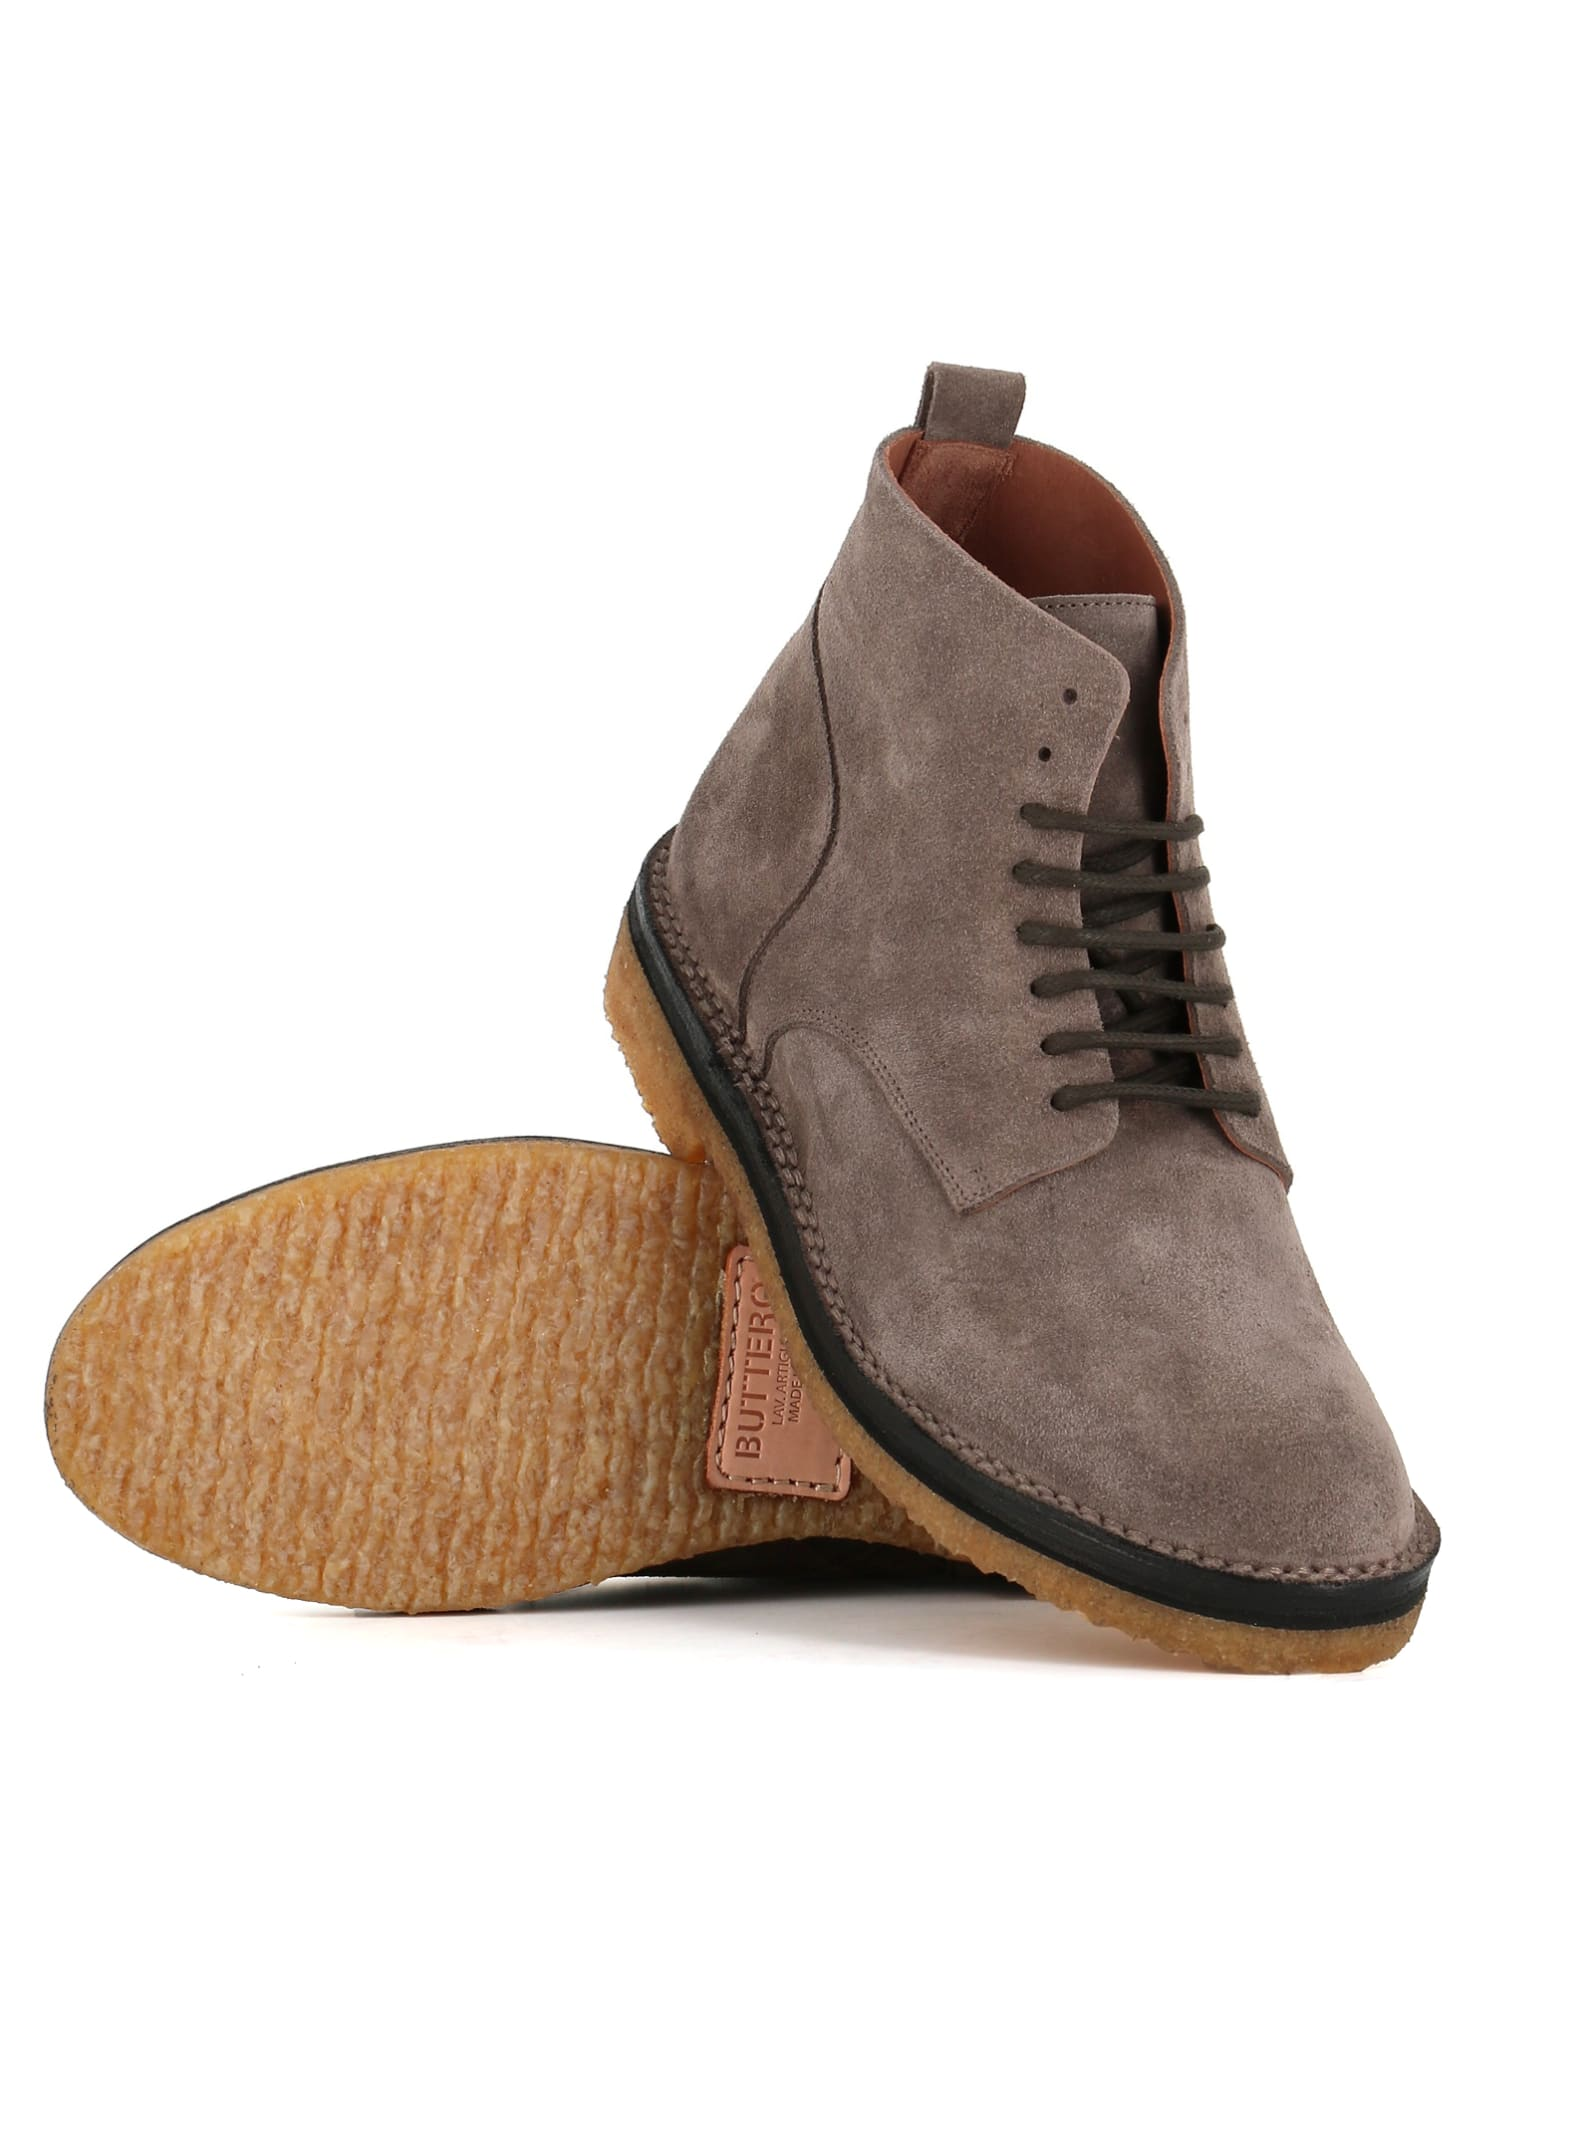 Buttero Lace-up Boot B7141